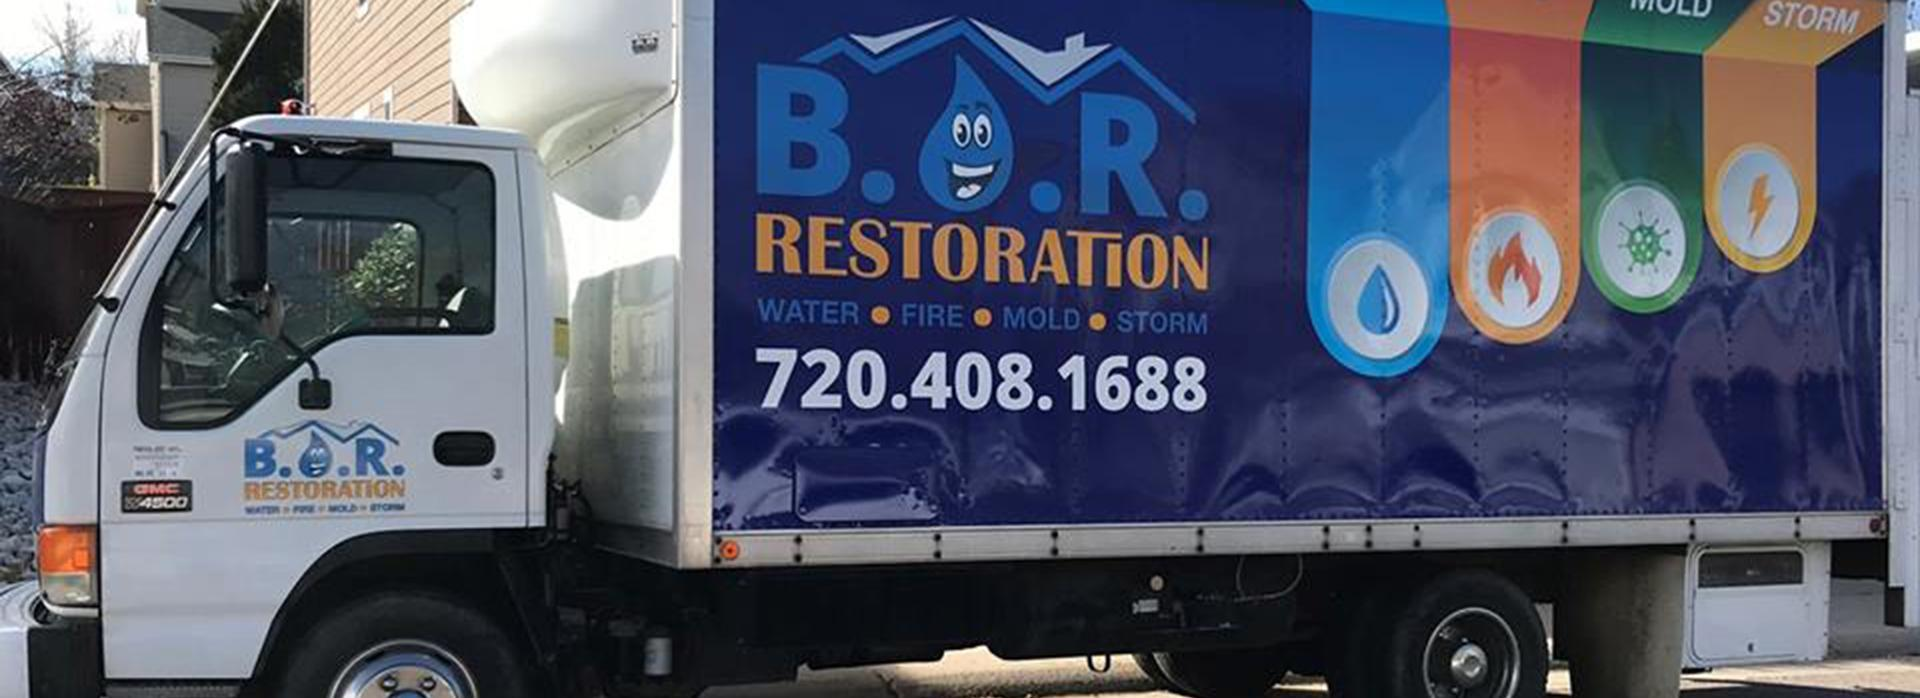 truck-bor-restoration-franchise-compressor